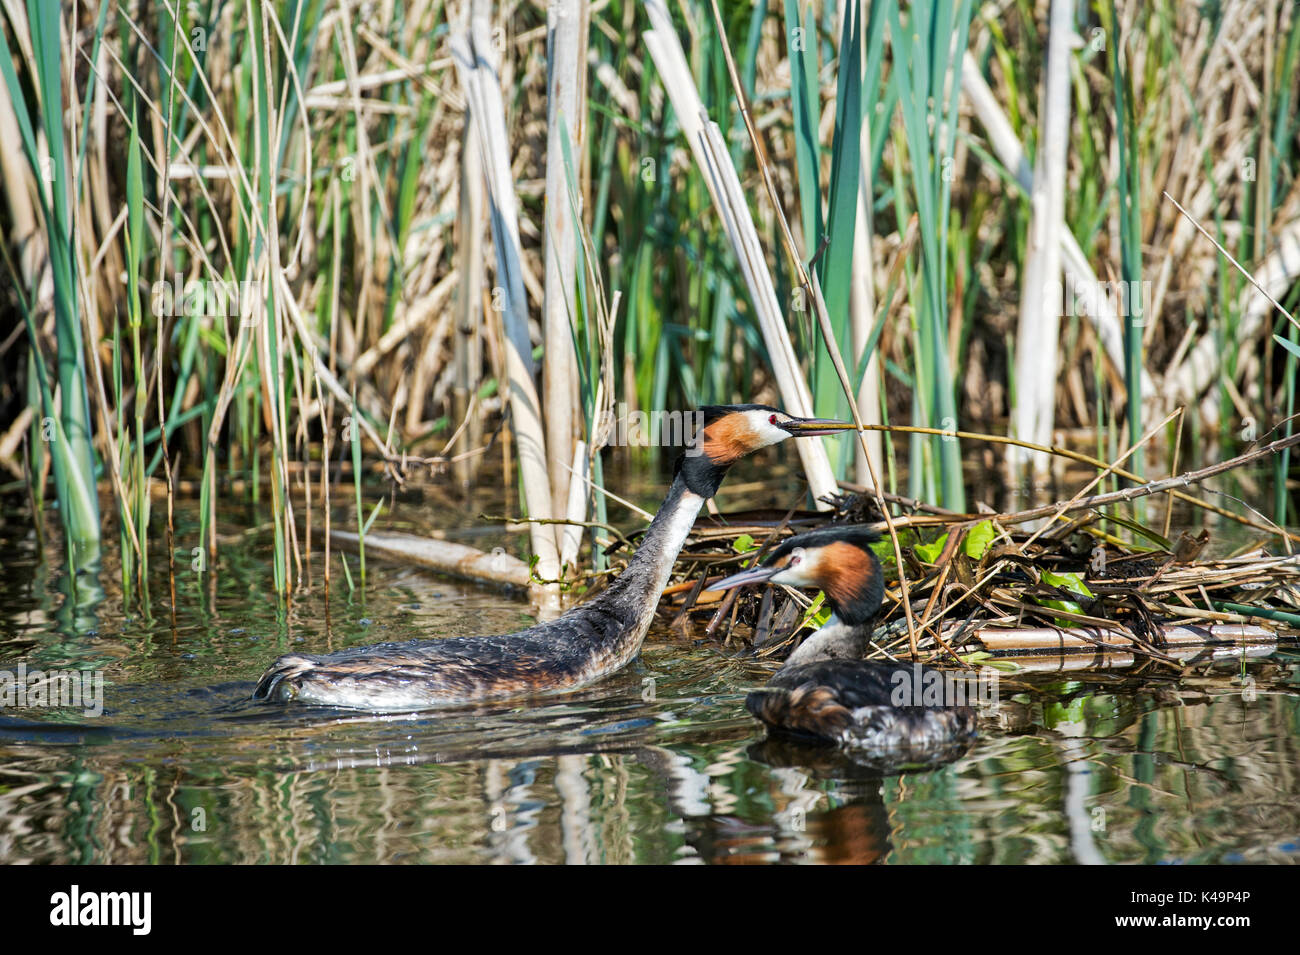 Couple Of Great Crested Grebes Podiceps Cristatus Building A Nest - Stock Image